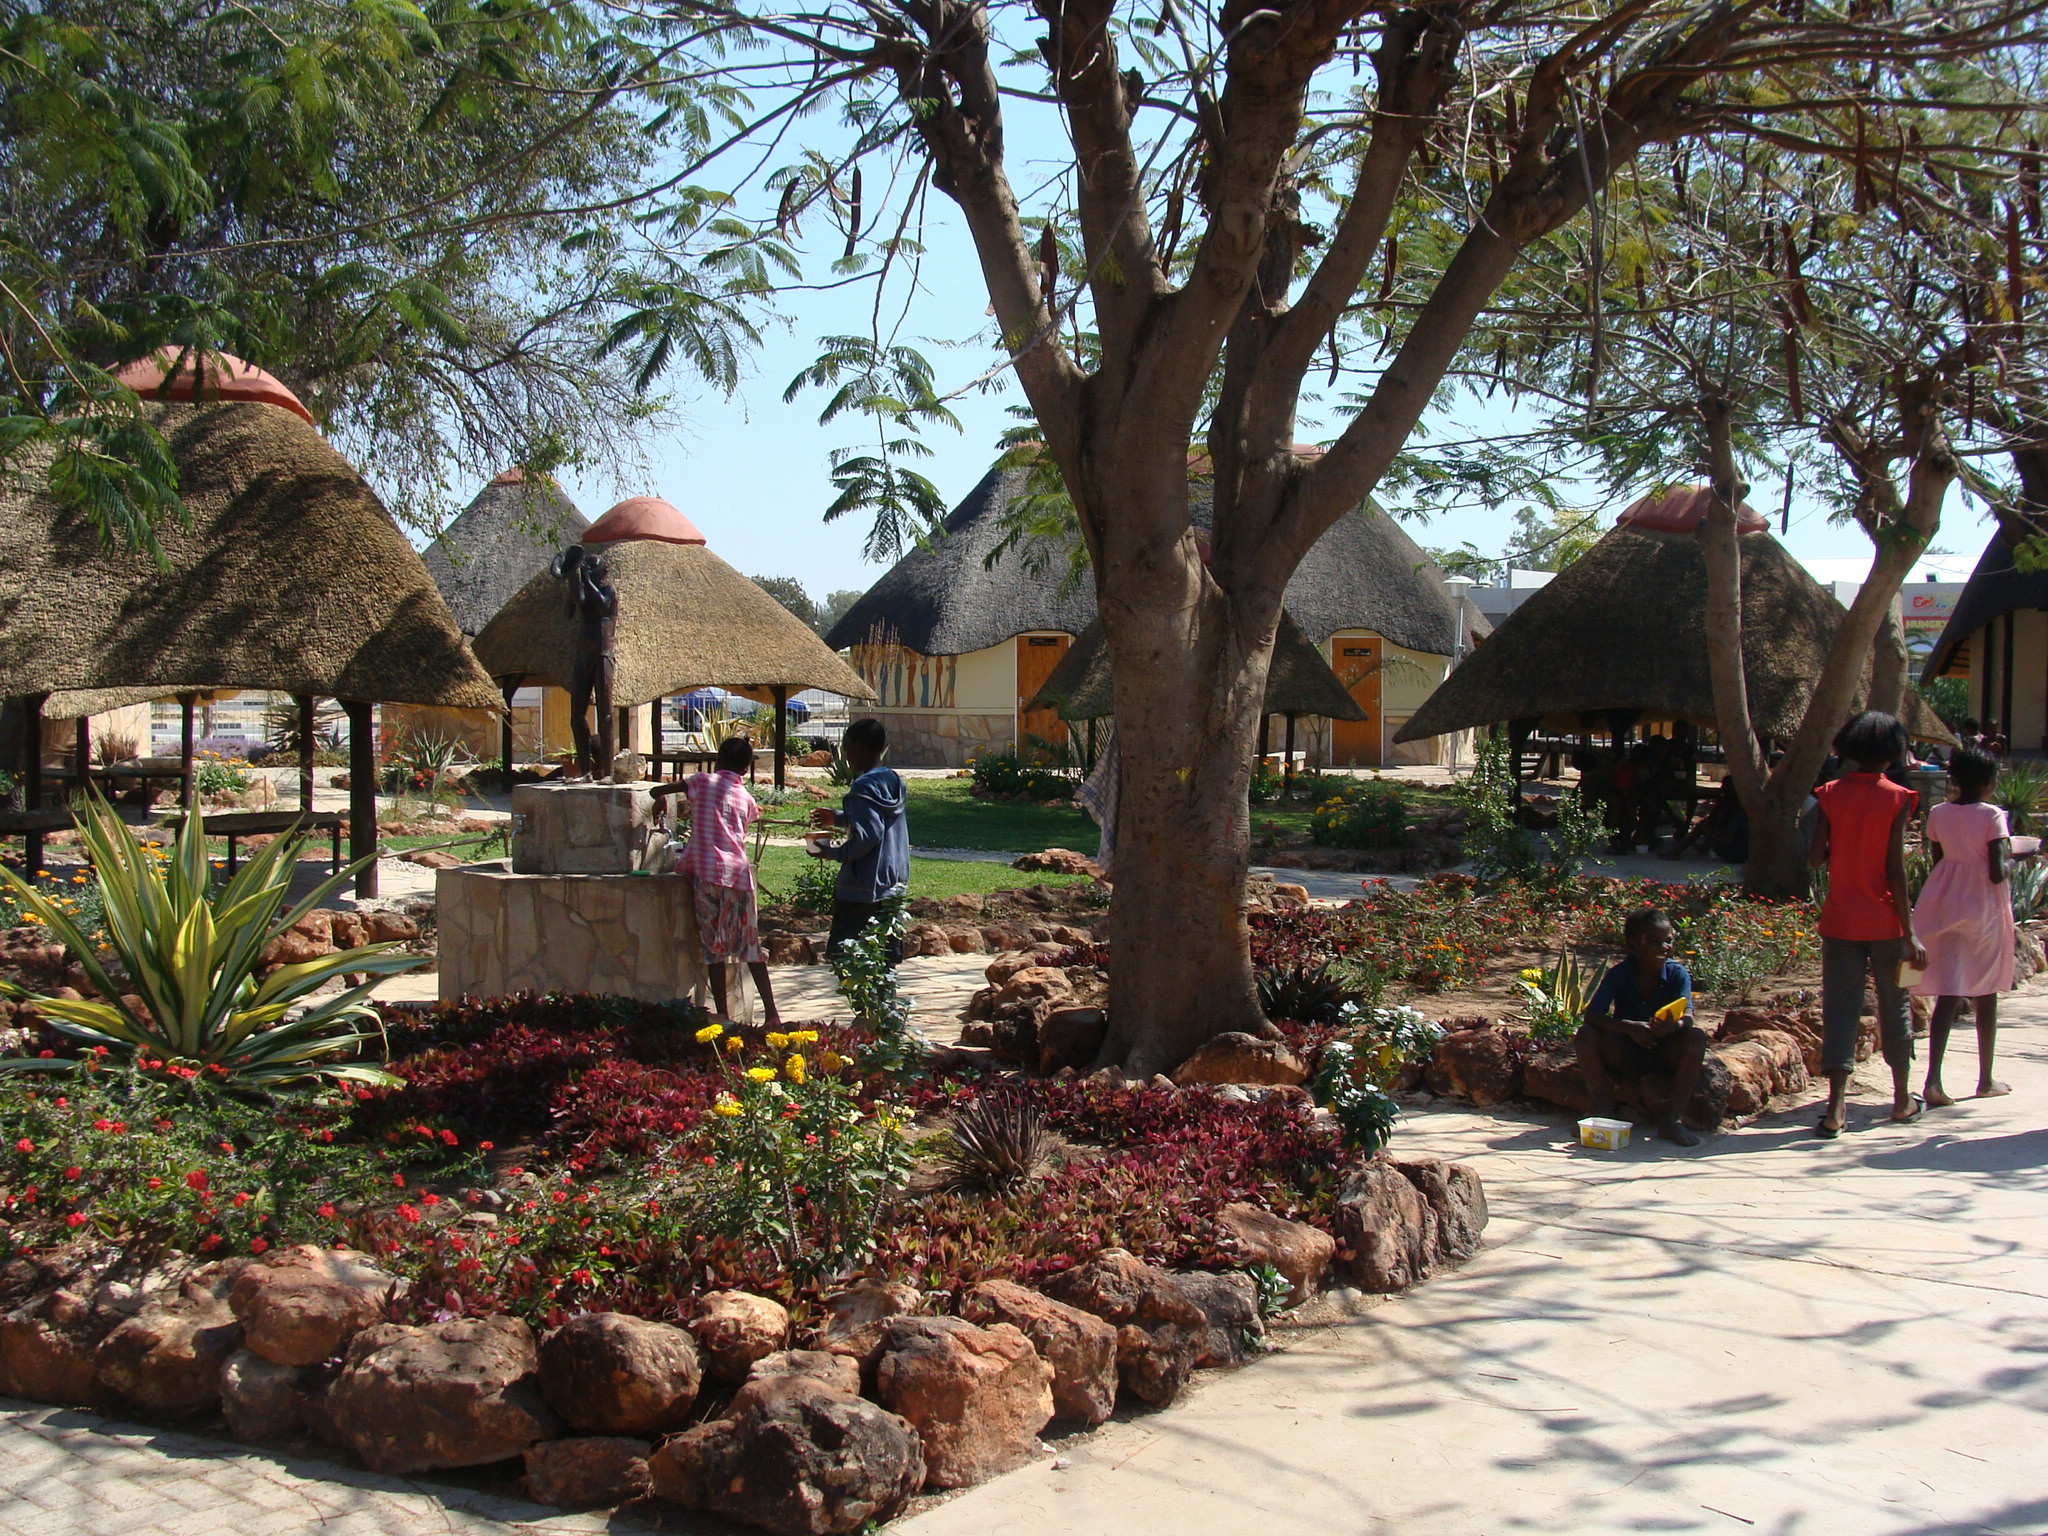 Tsumeb Namibia  City pictures : Arts Performance Centre, Tsumeb Namibia | Baobab Guides